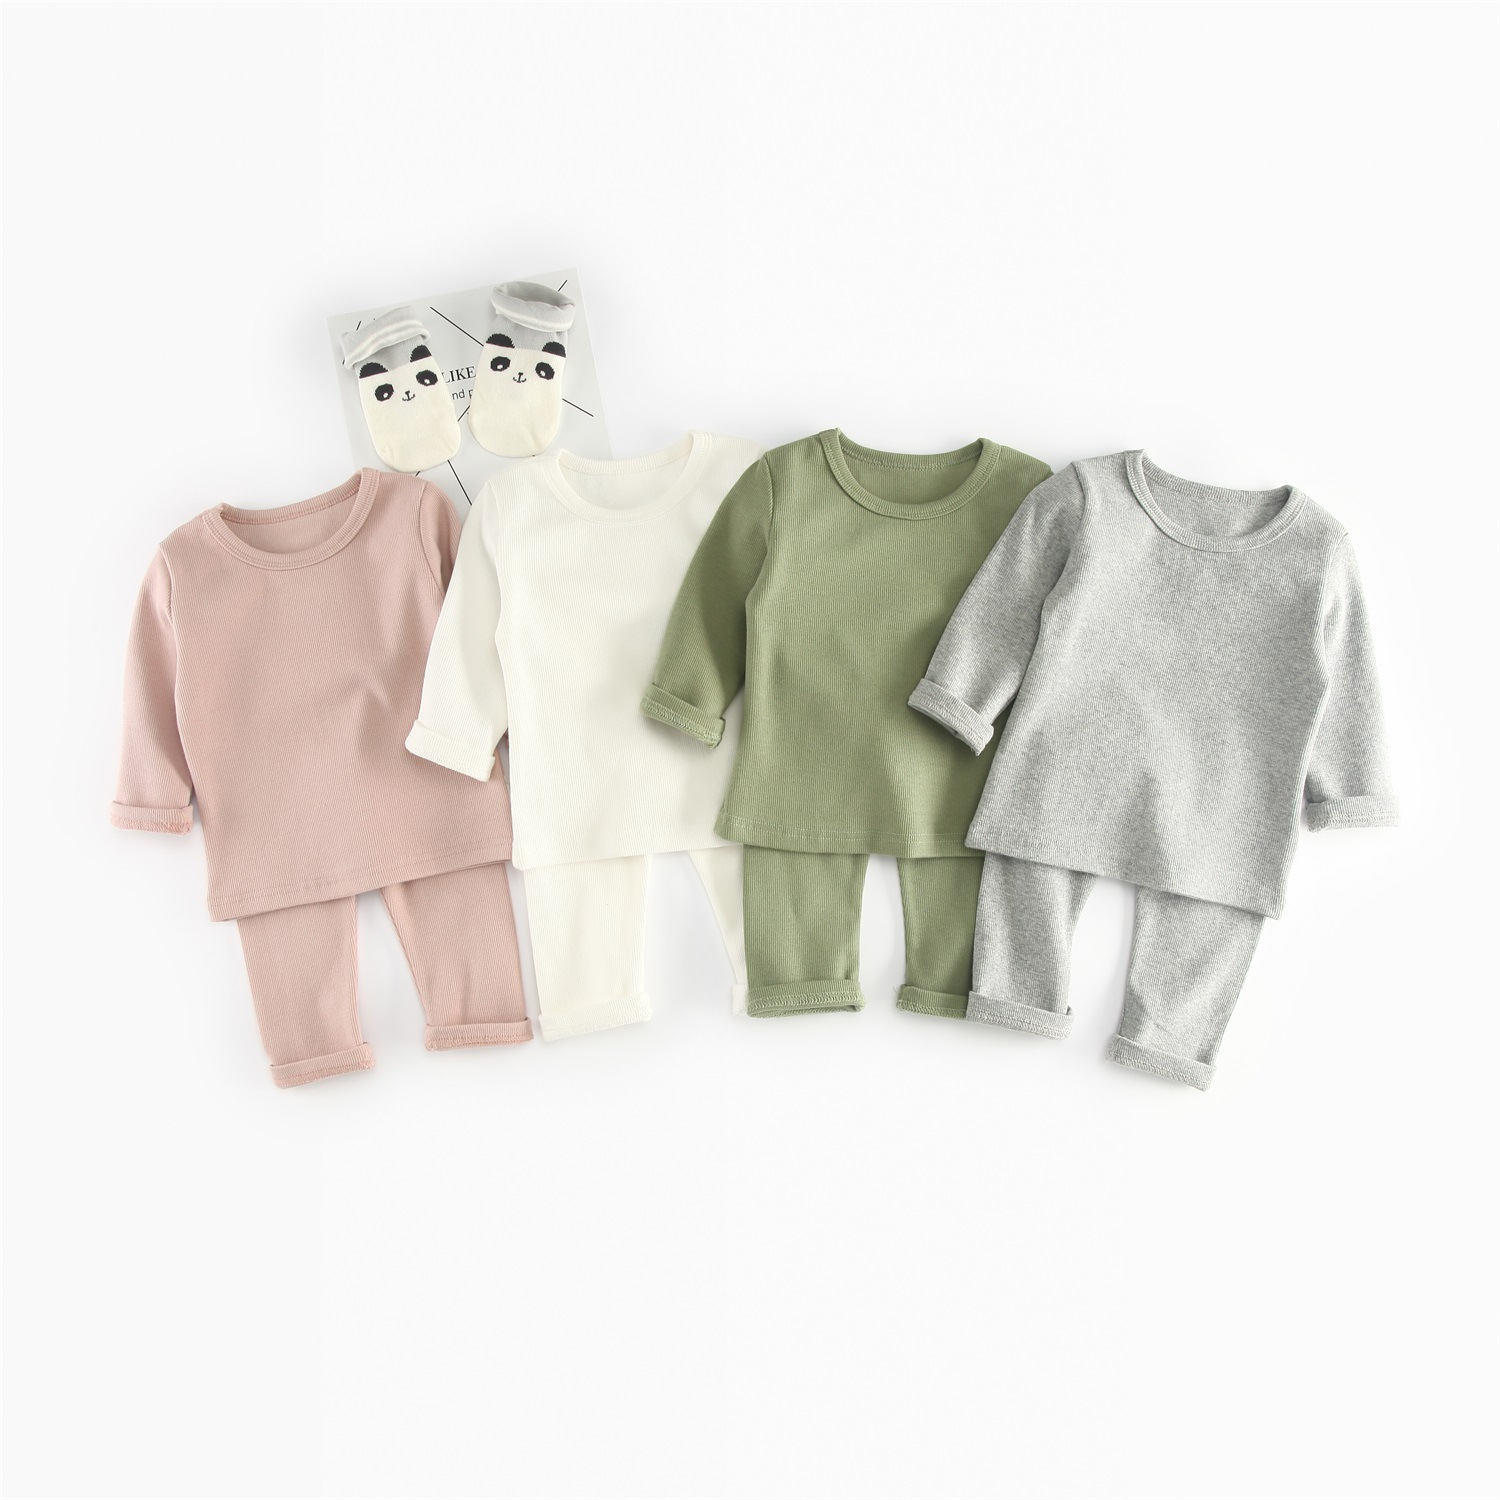 60c43db5aad9 2pcs sets 2018 New Autumn Kids Tracksuits Baby Rib Cotton Long ...